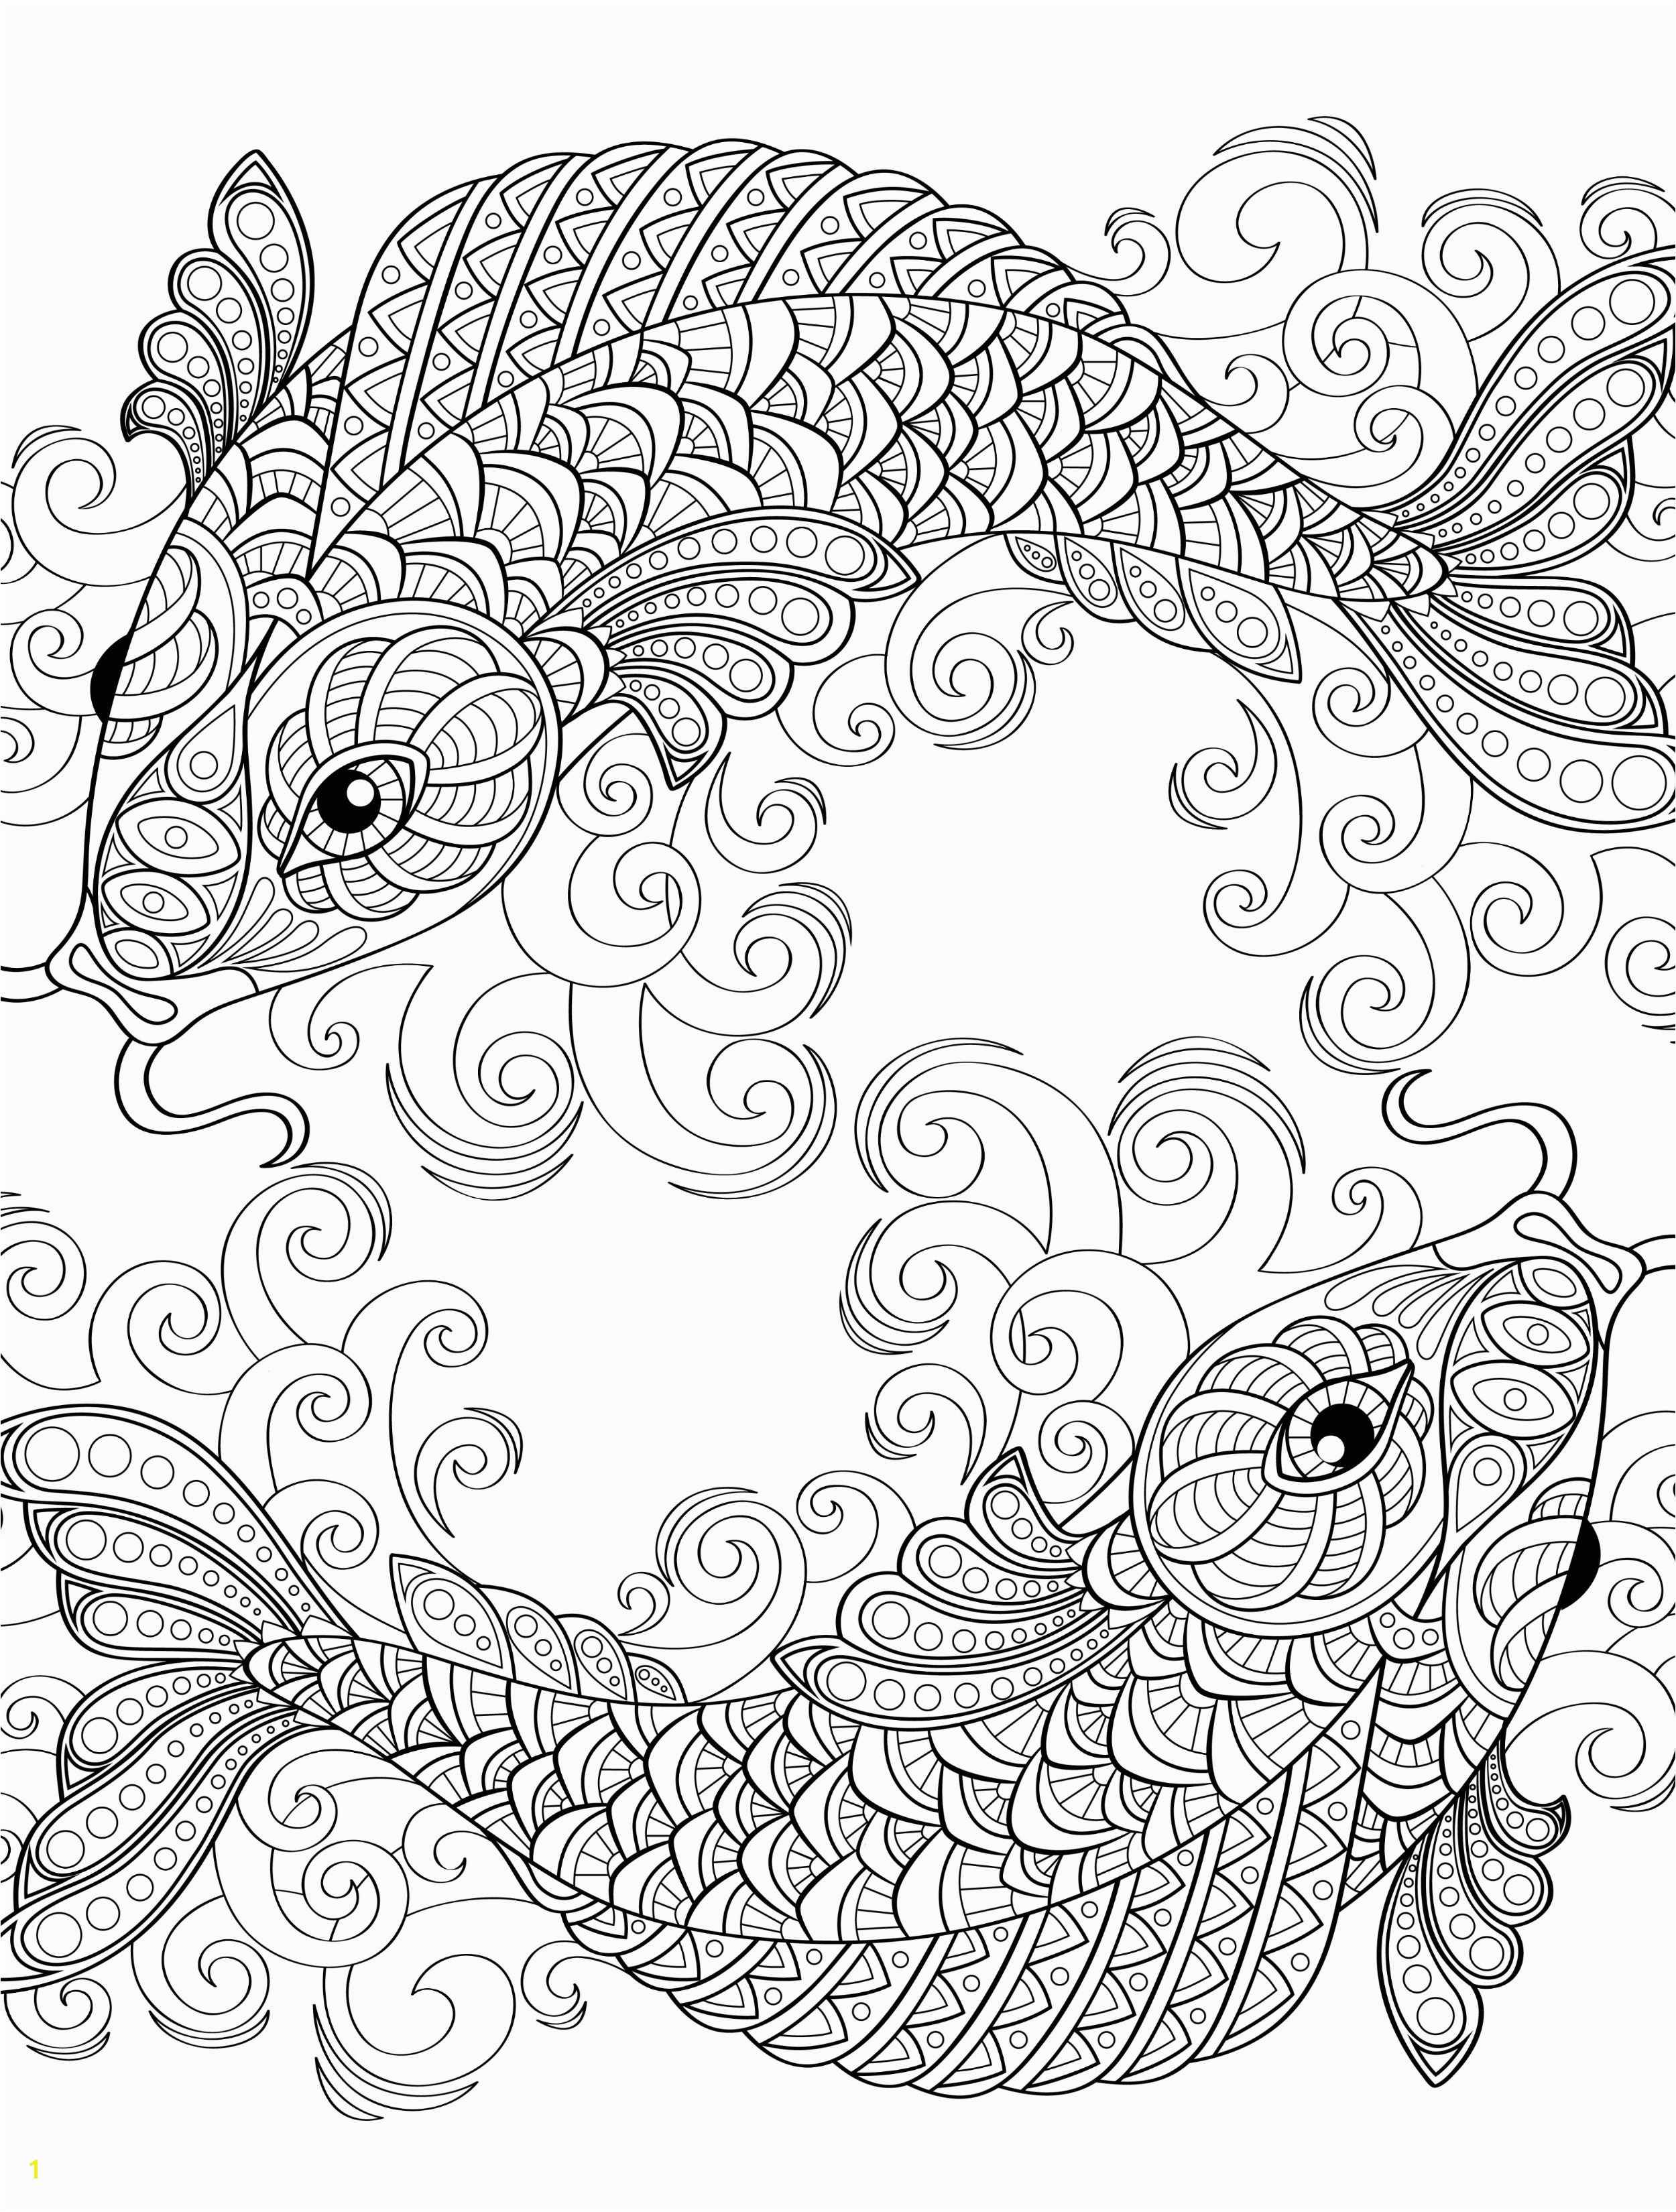 Japanese Koi Fish Coloring Pages 18 Absurdly Whimsical Adult Coloring Pages Coloring